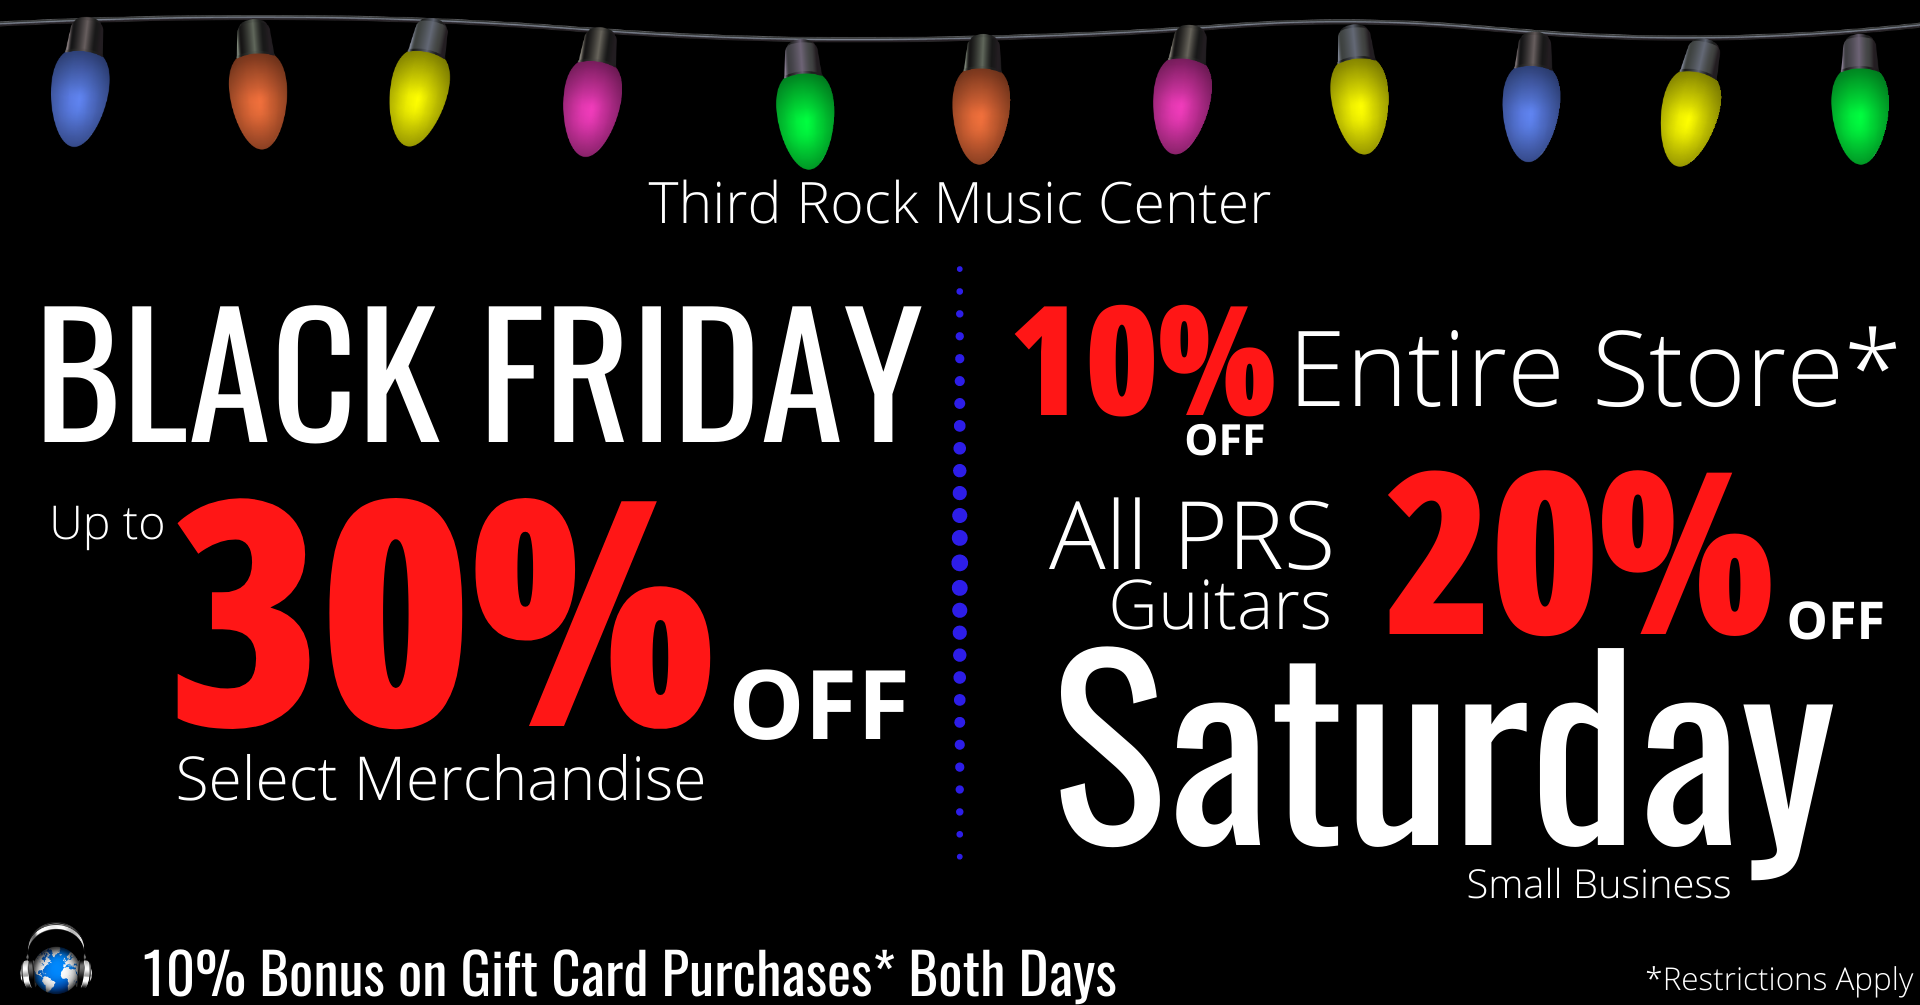 Black Friday sales at Third Rock Music Center. Take up to 30% off on Black Friday.